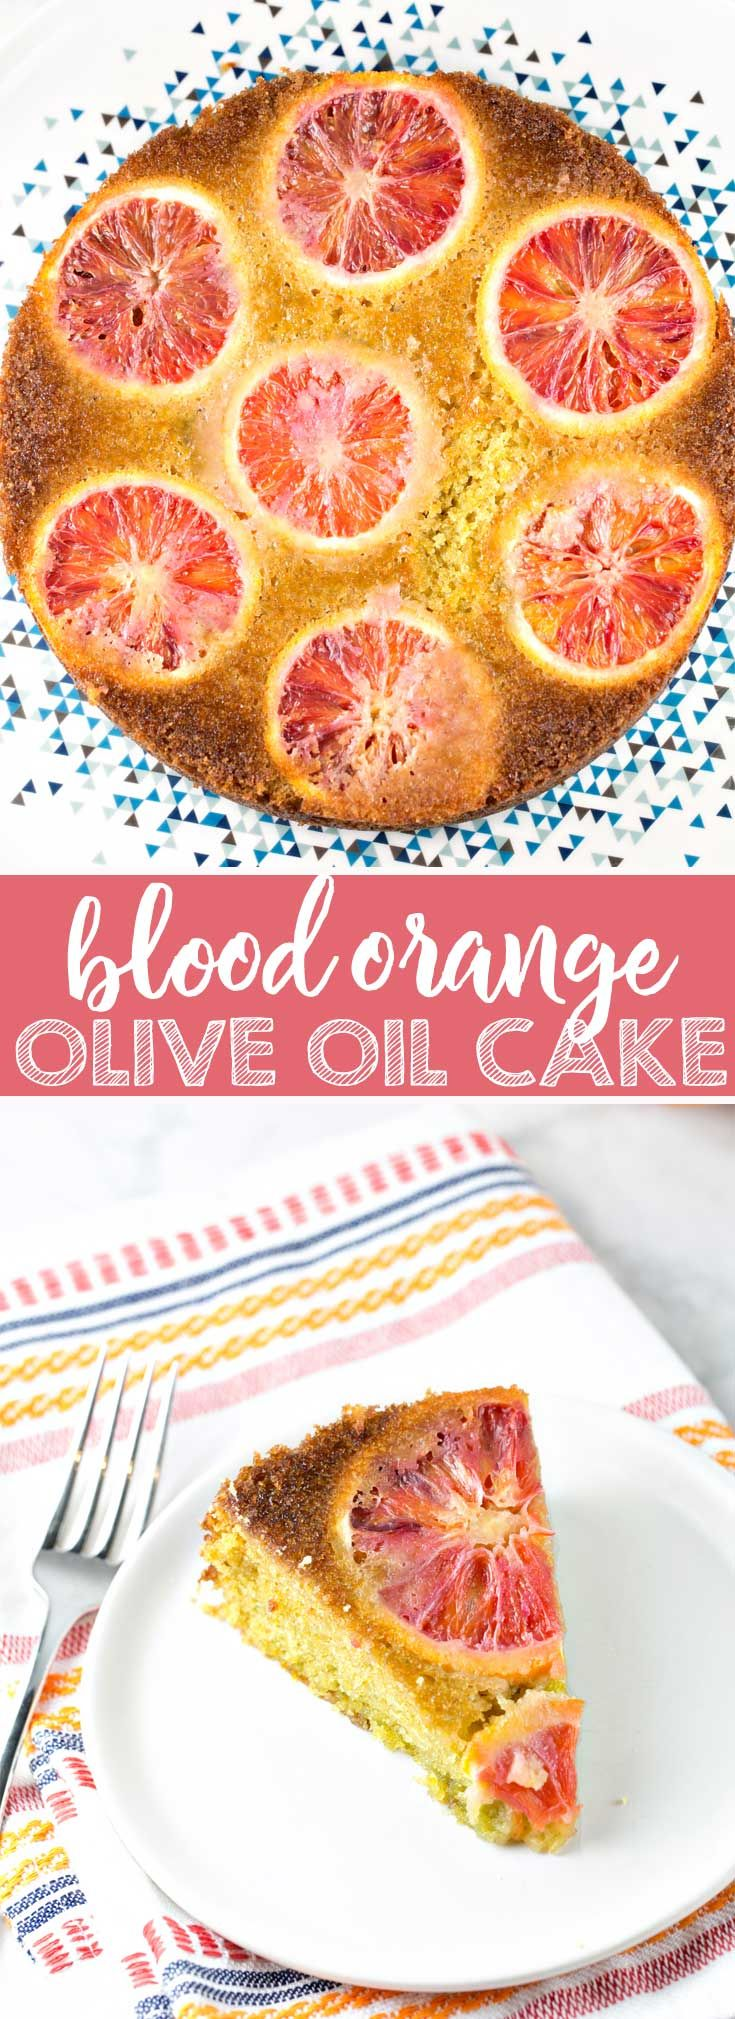 Blood Orange Olive Oil Cake: a moist and delicious, one bowl, mix by hand, dairy free cake becomes dinner party worthy with blood oranges. #bloodorange #oliveoilcake #cake #dairyfree via @bnsnbrnrbakery